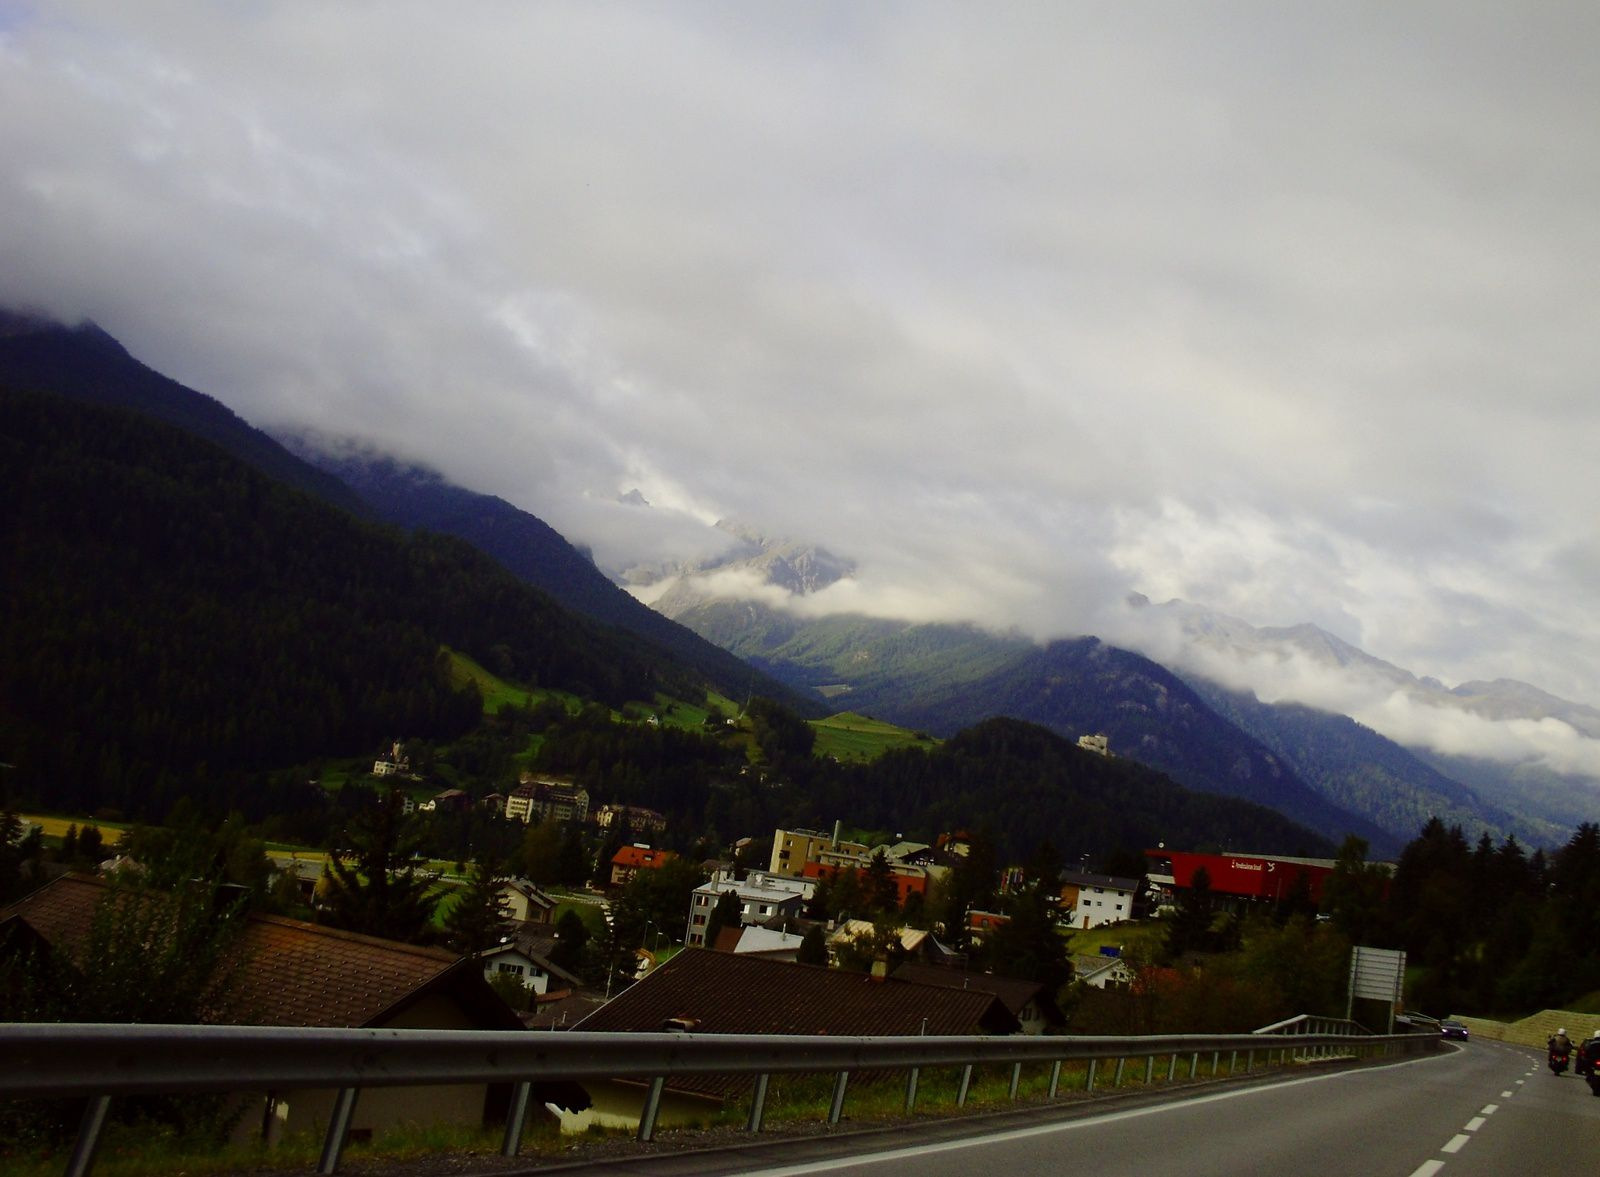 ON APPROCHE DE LA VILLE DE SCUOL